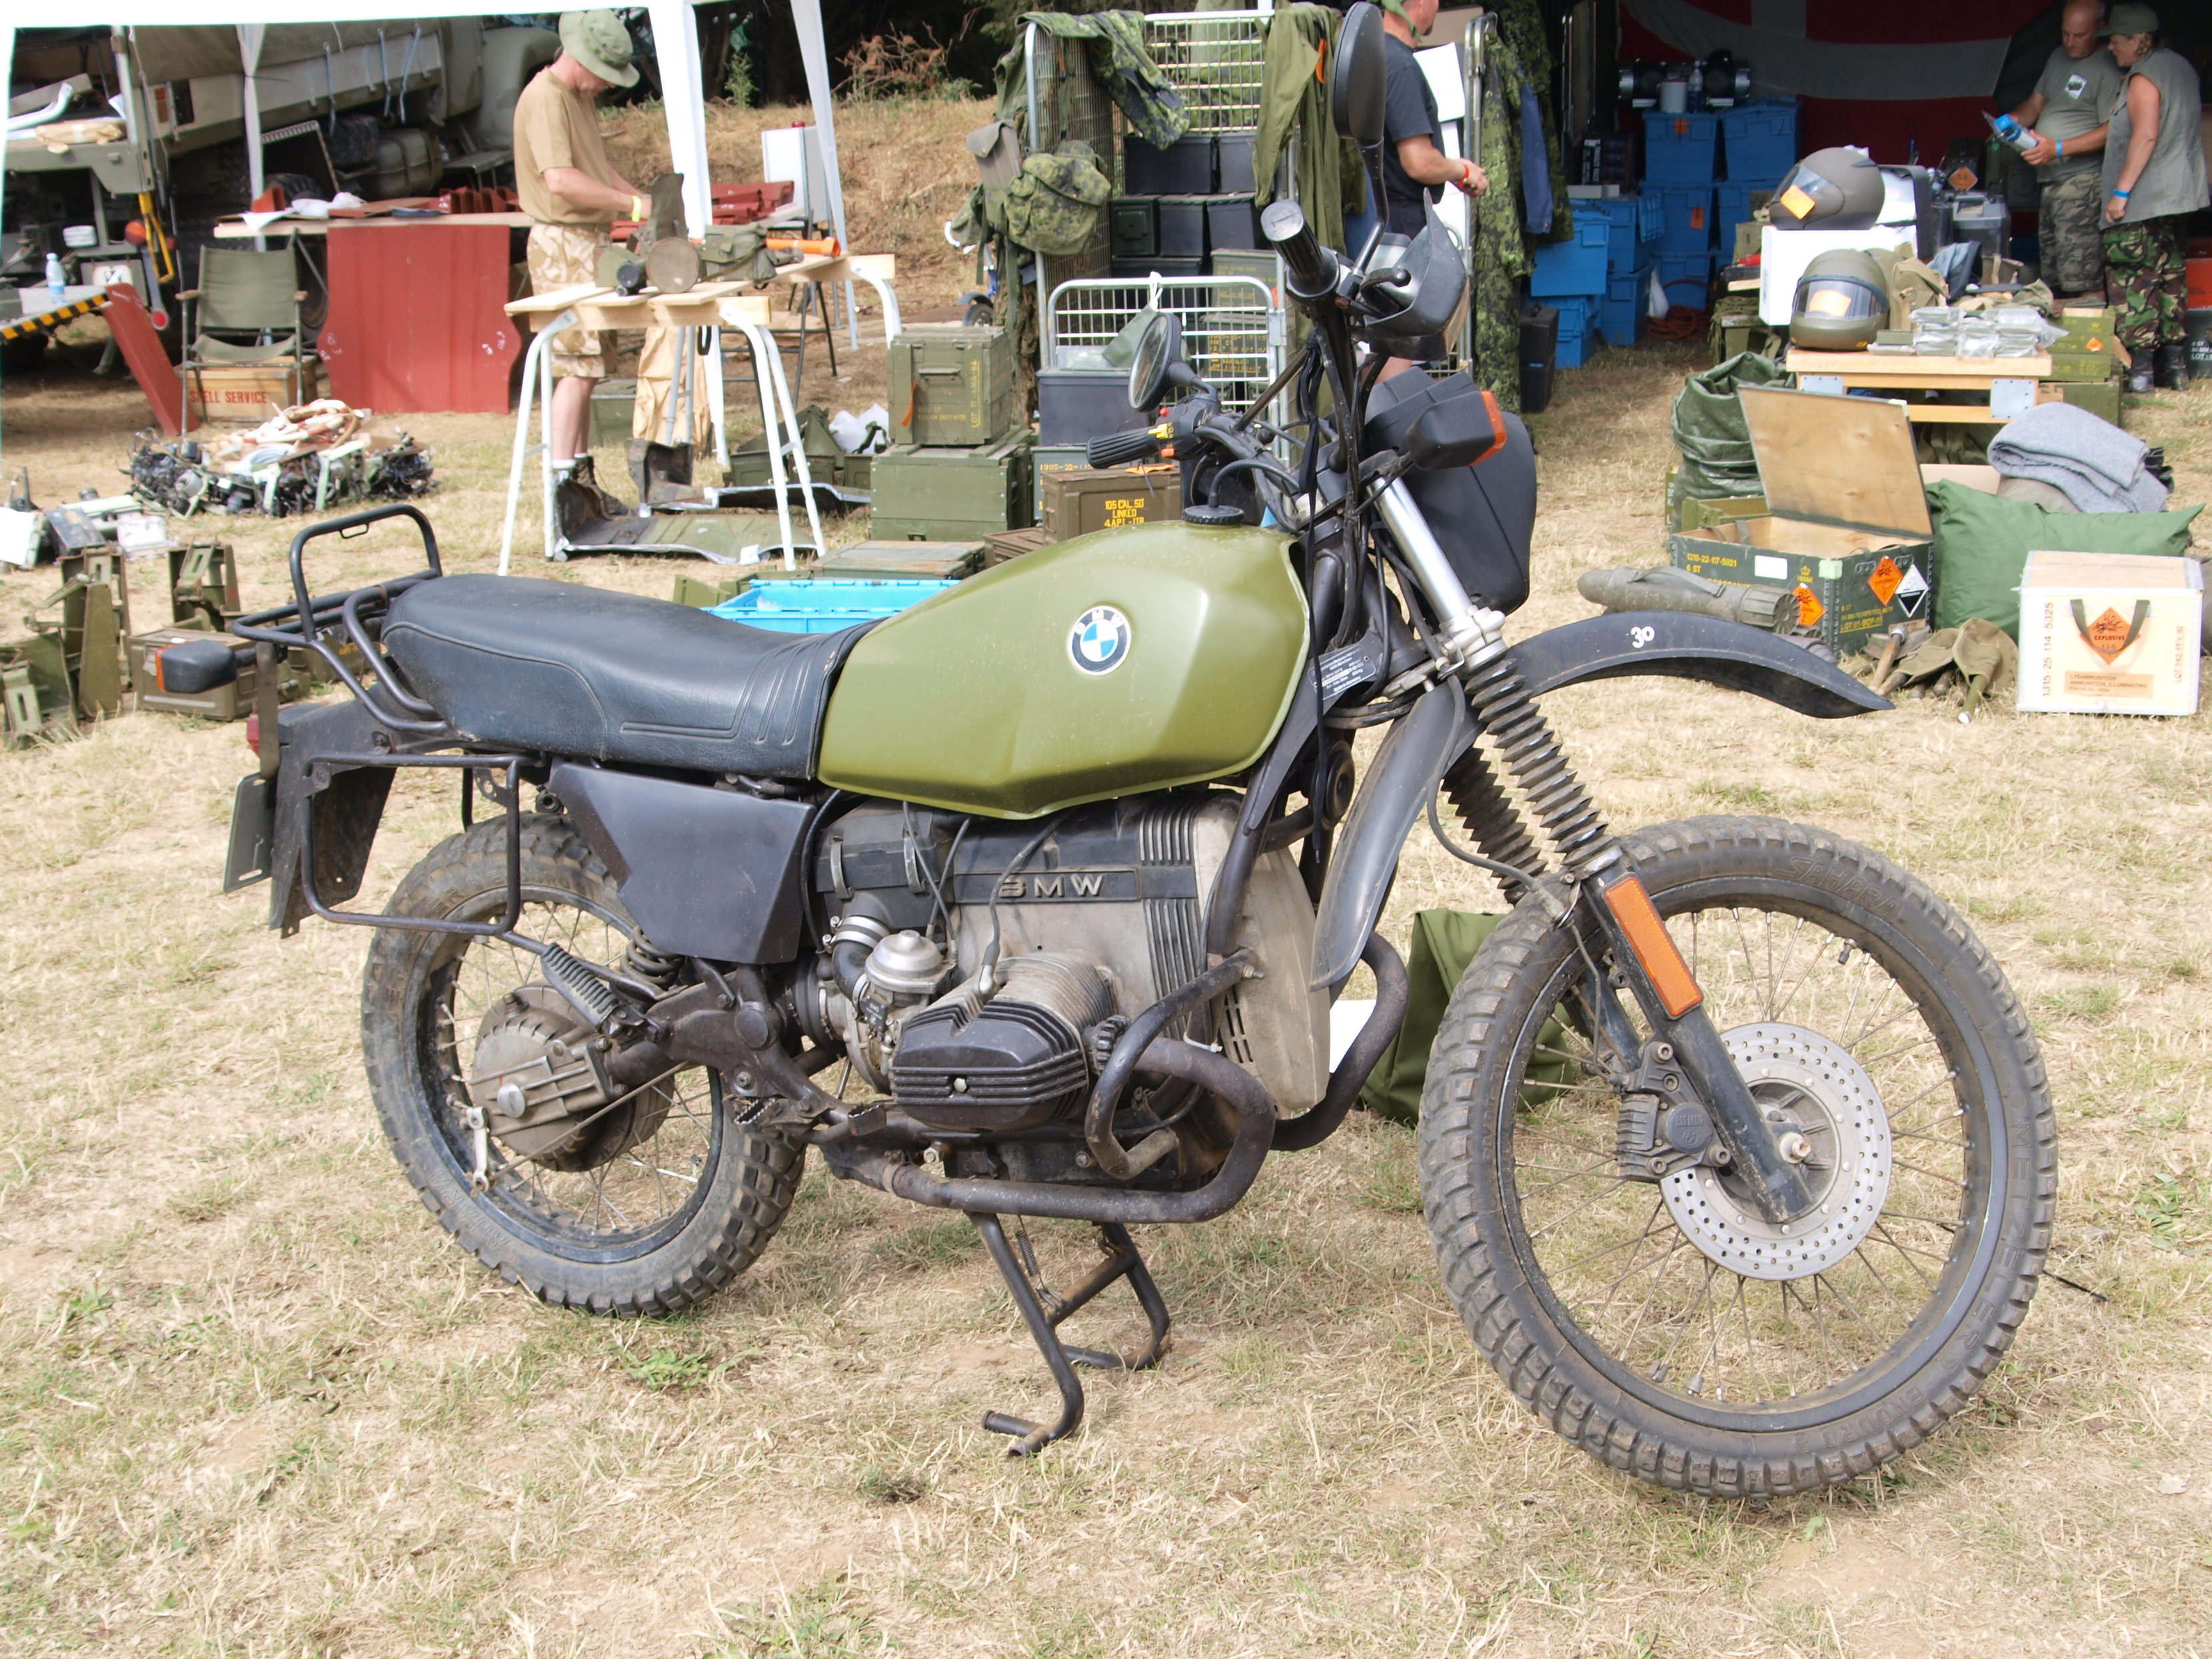 file:bmw military motorcycle - wikimedia commons